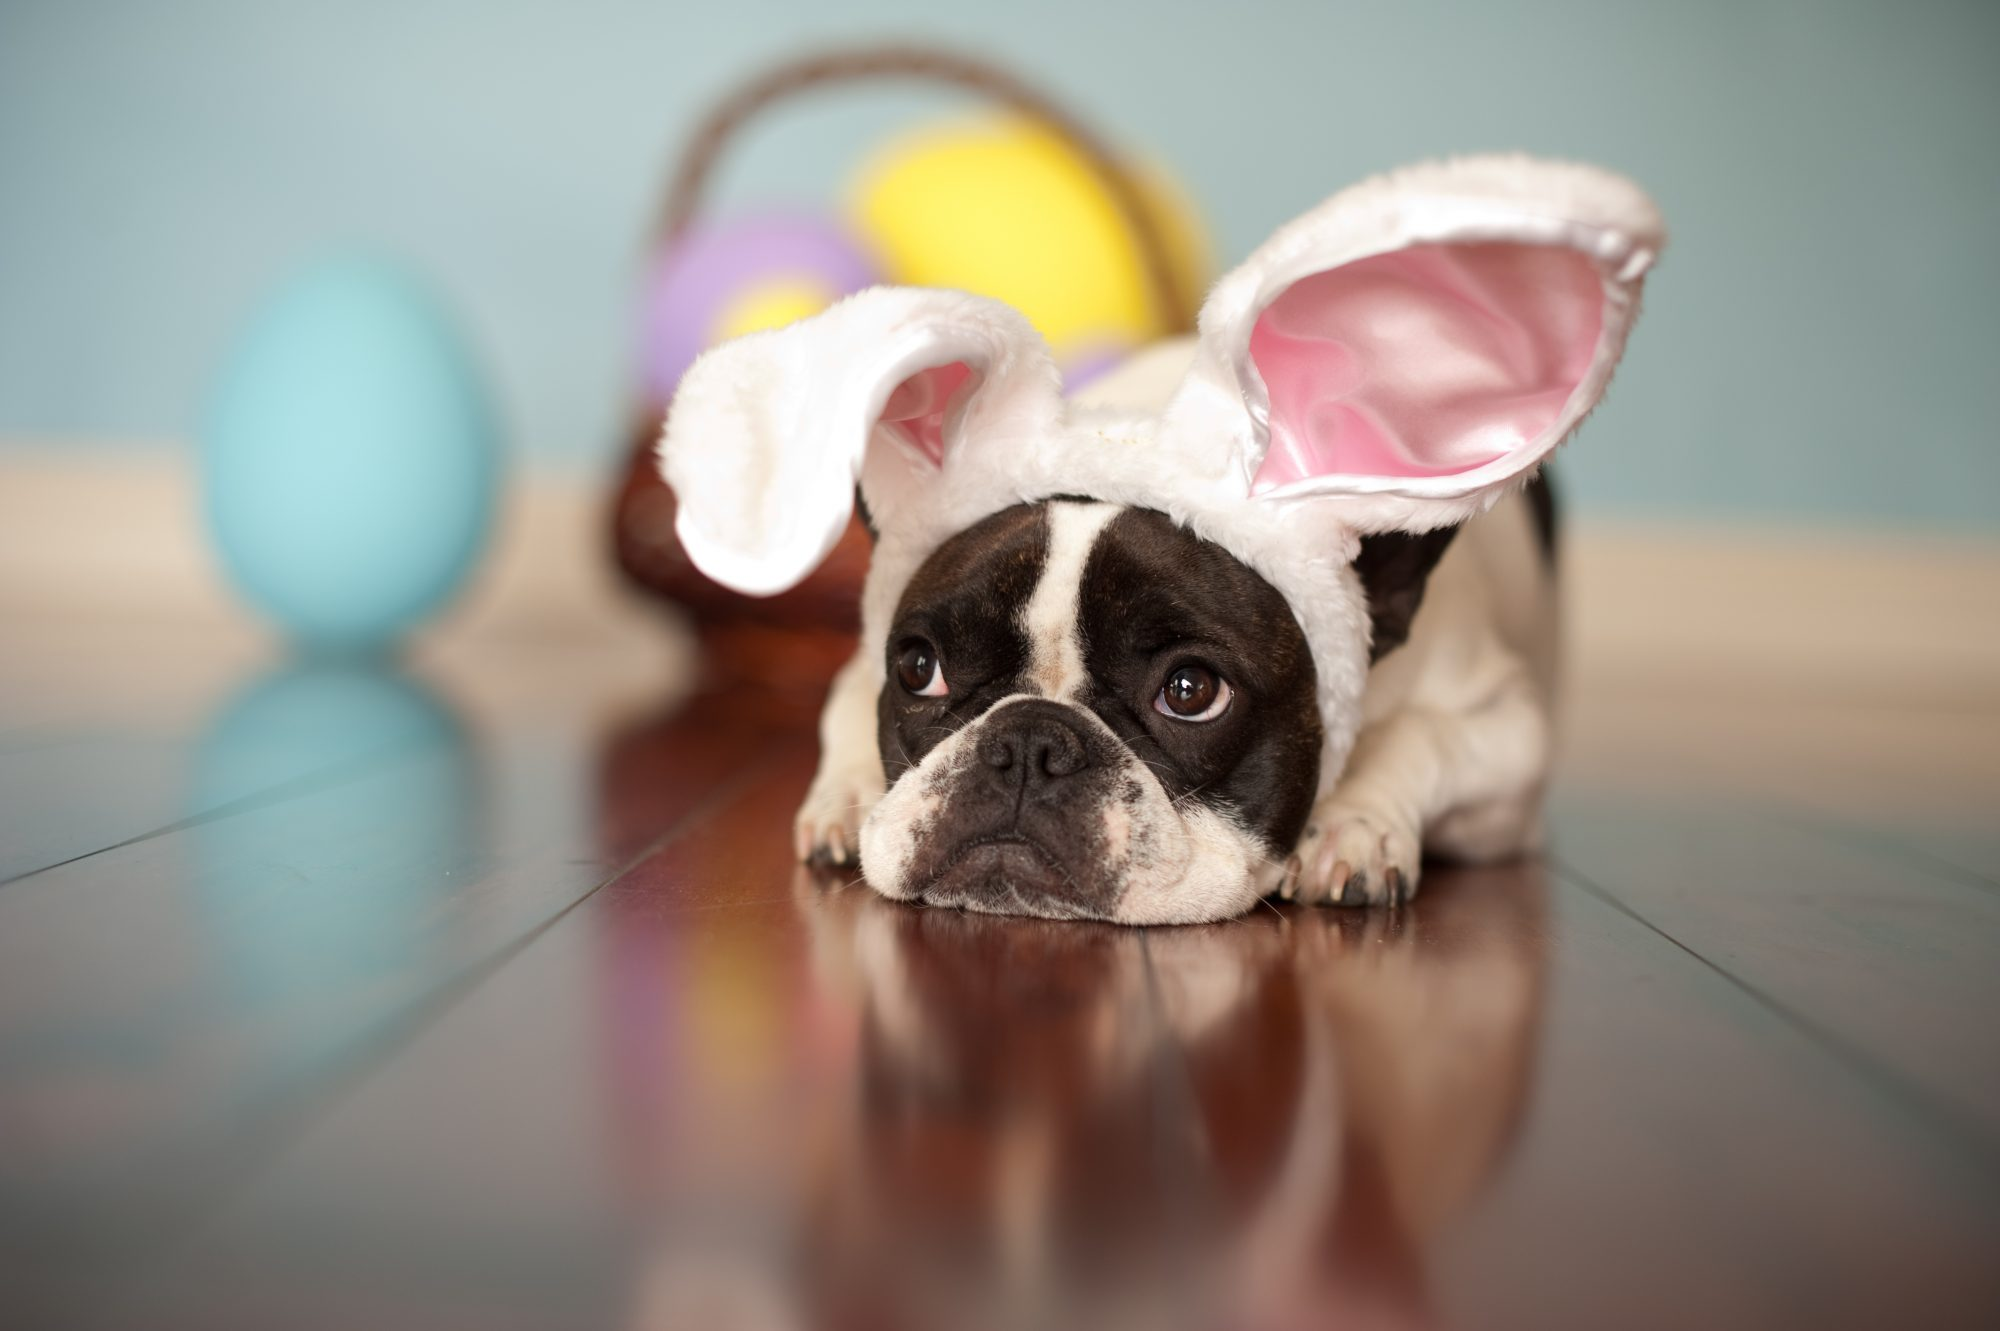 Pet in the Iconic Cadbury Egg Commercial